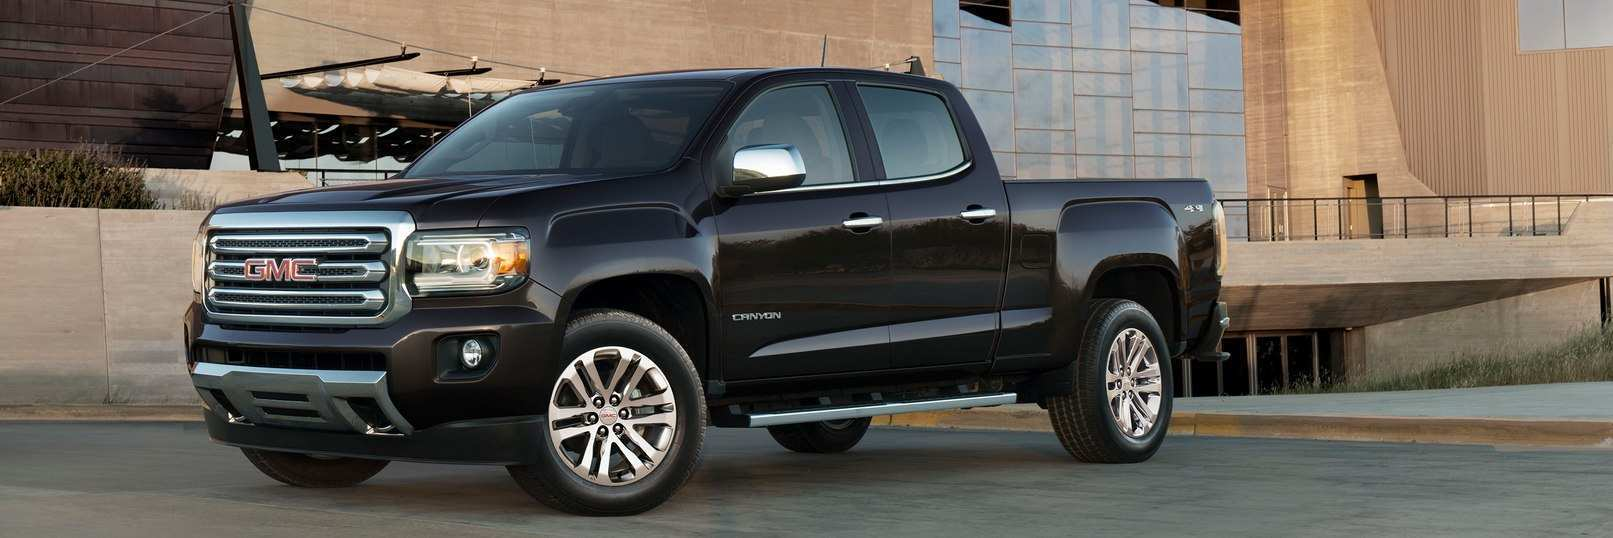 82 Great 2019 Gmc Canyon Rumors Engine by 2019 Gmc Canyon Rumors